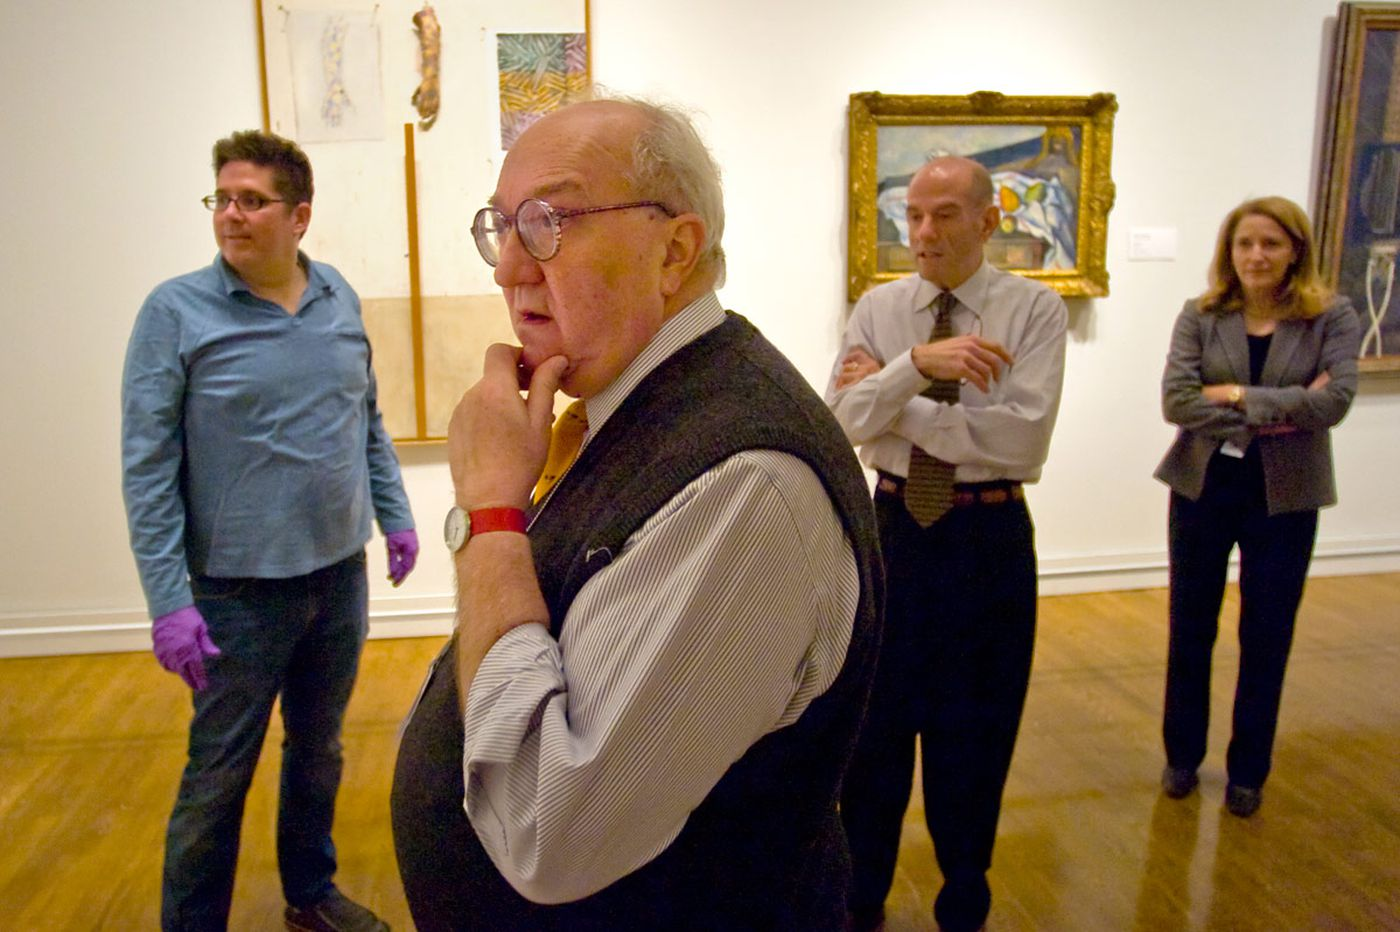 Joe Rishel, curator of just about everything at Art Museum, retires, stops wearing tie